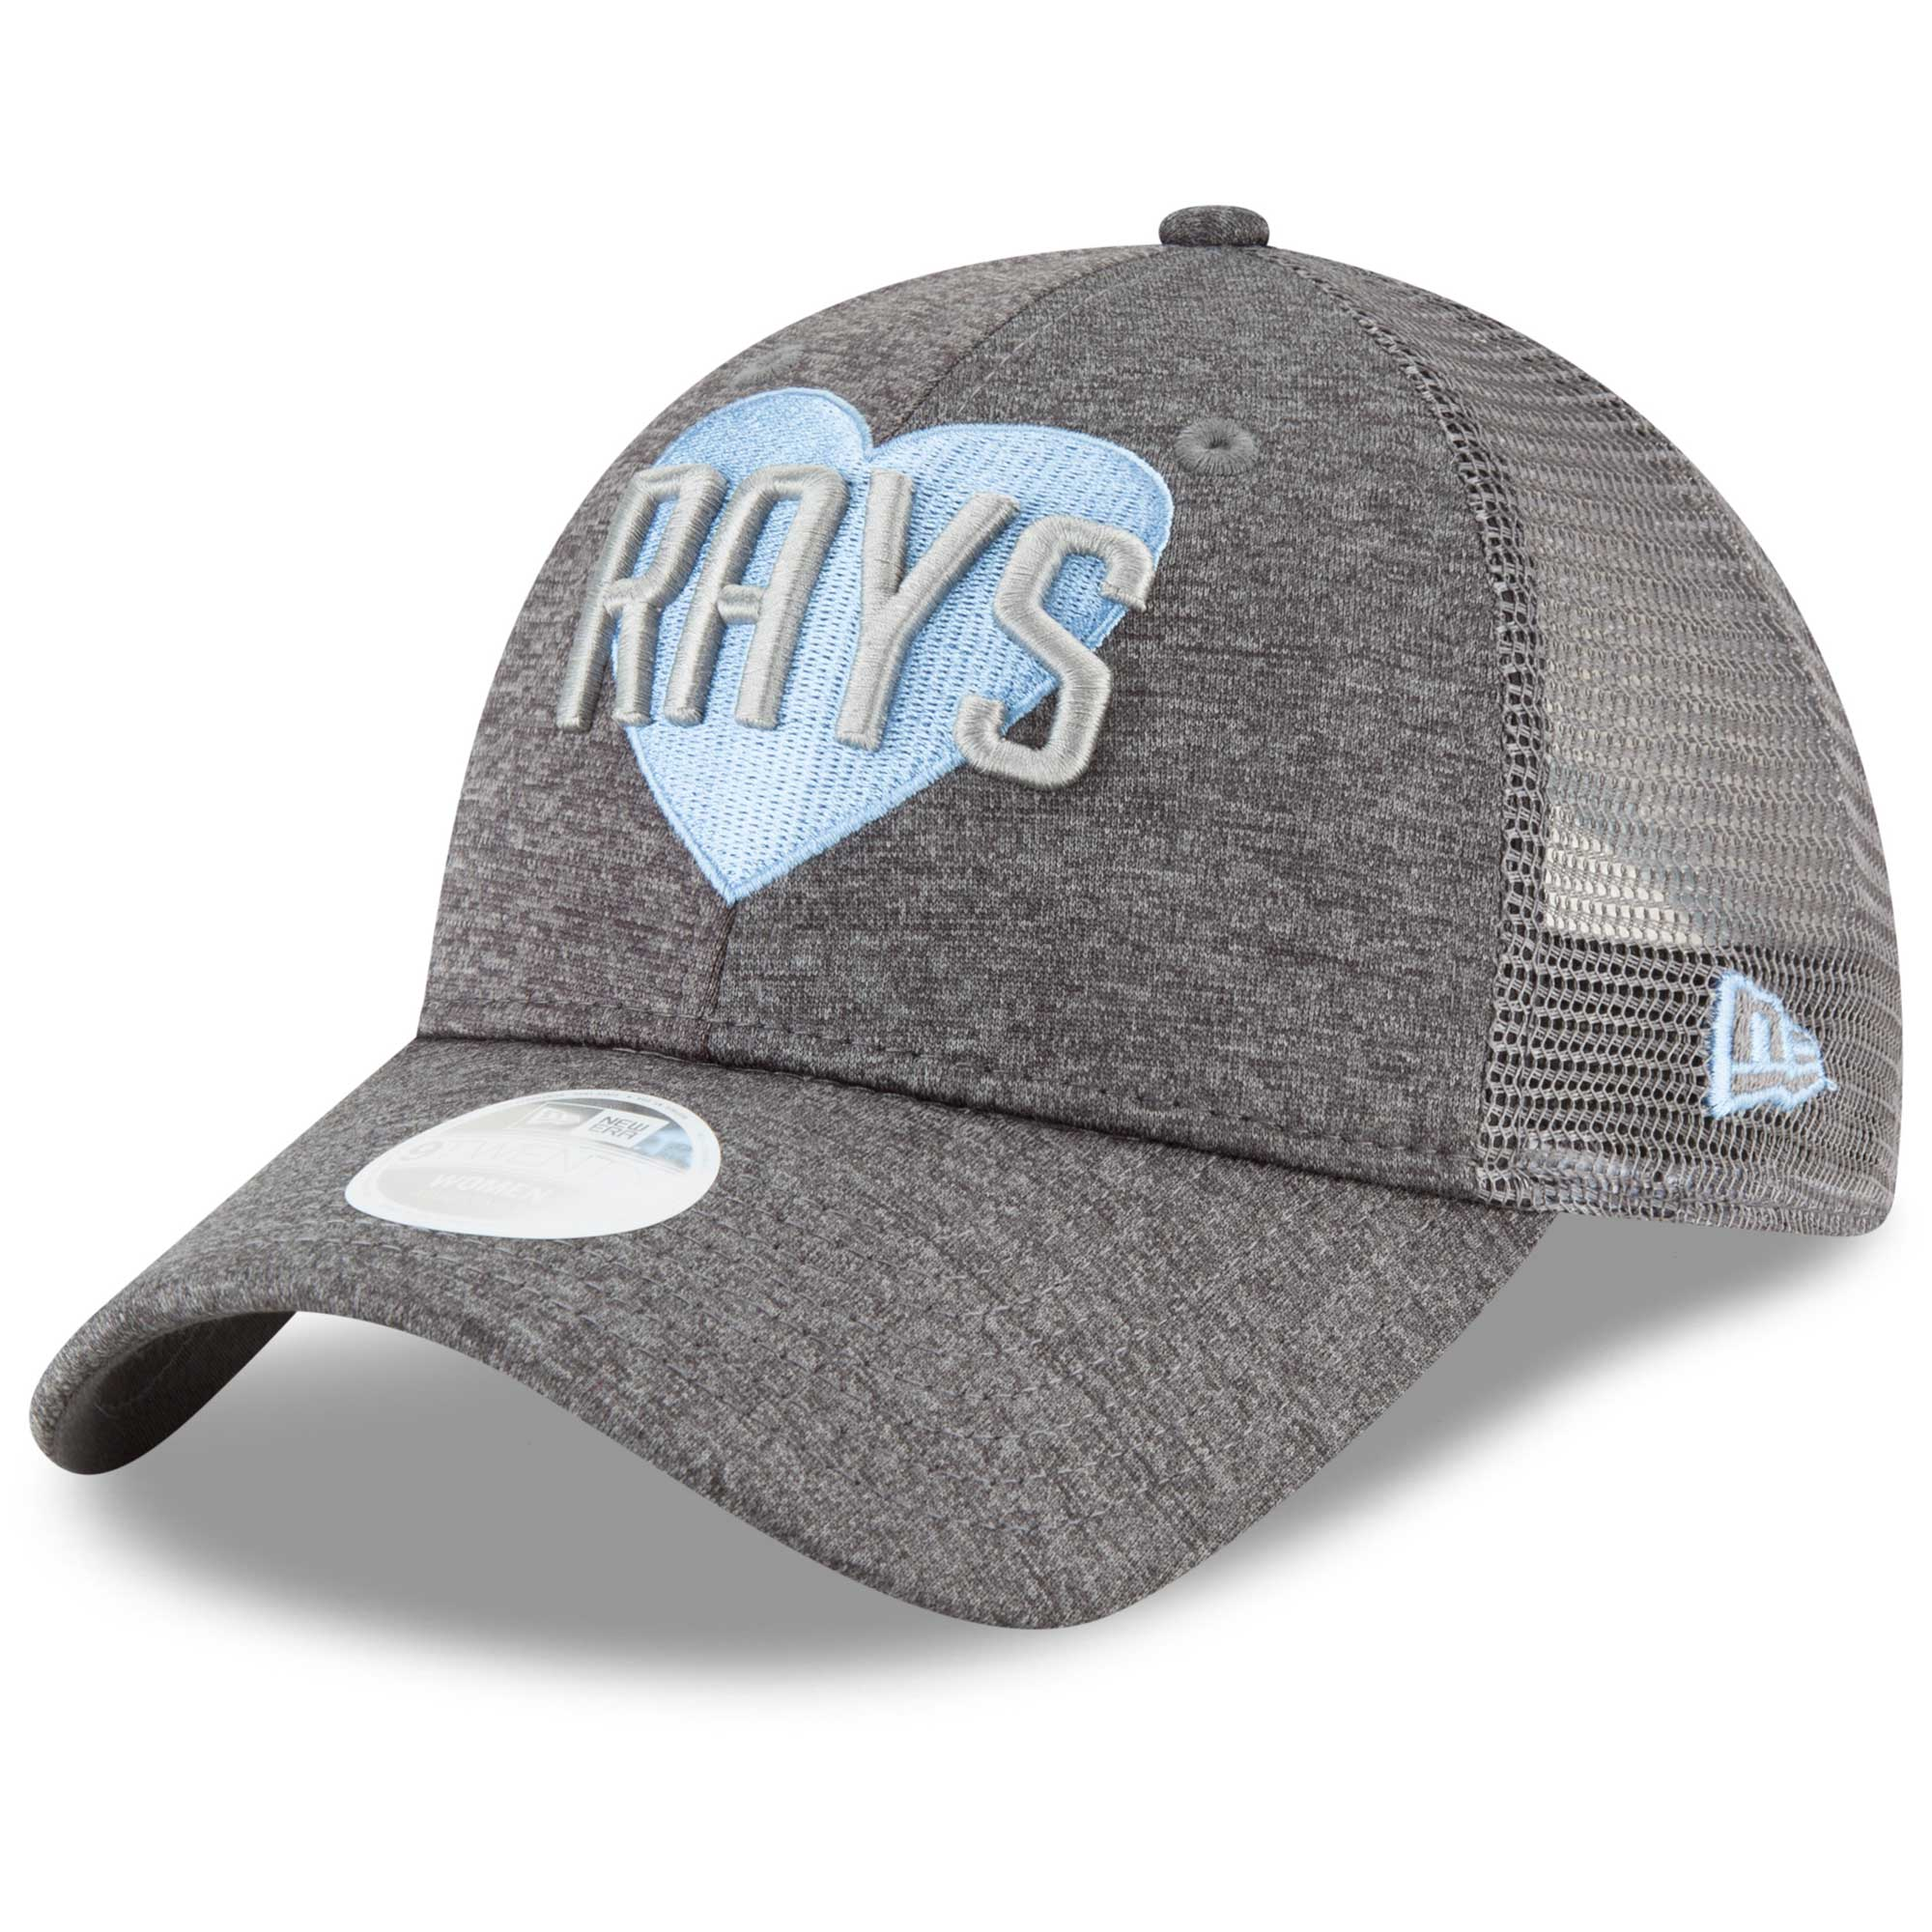 Tampa Bay Rays New Era Women s Snapped Love 9TWENTY Adjustable Hat ... 903ce73db